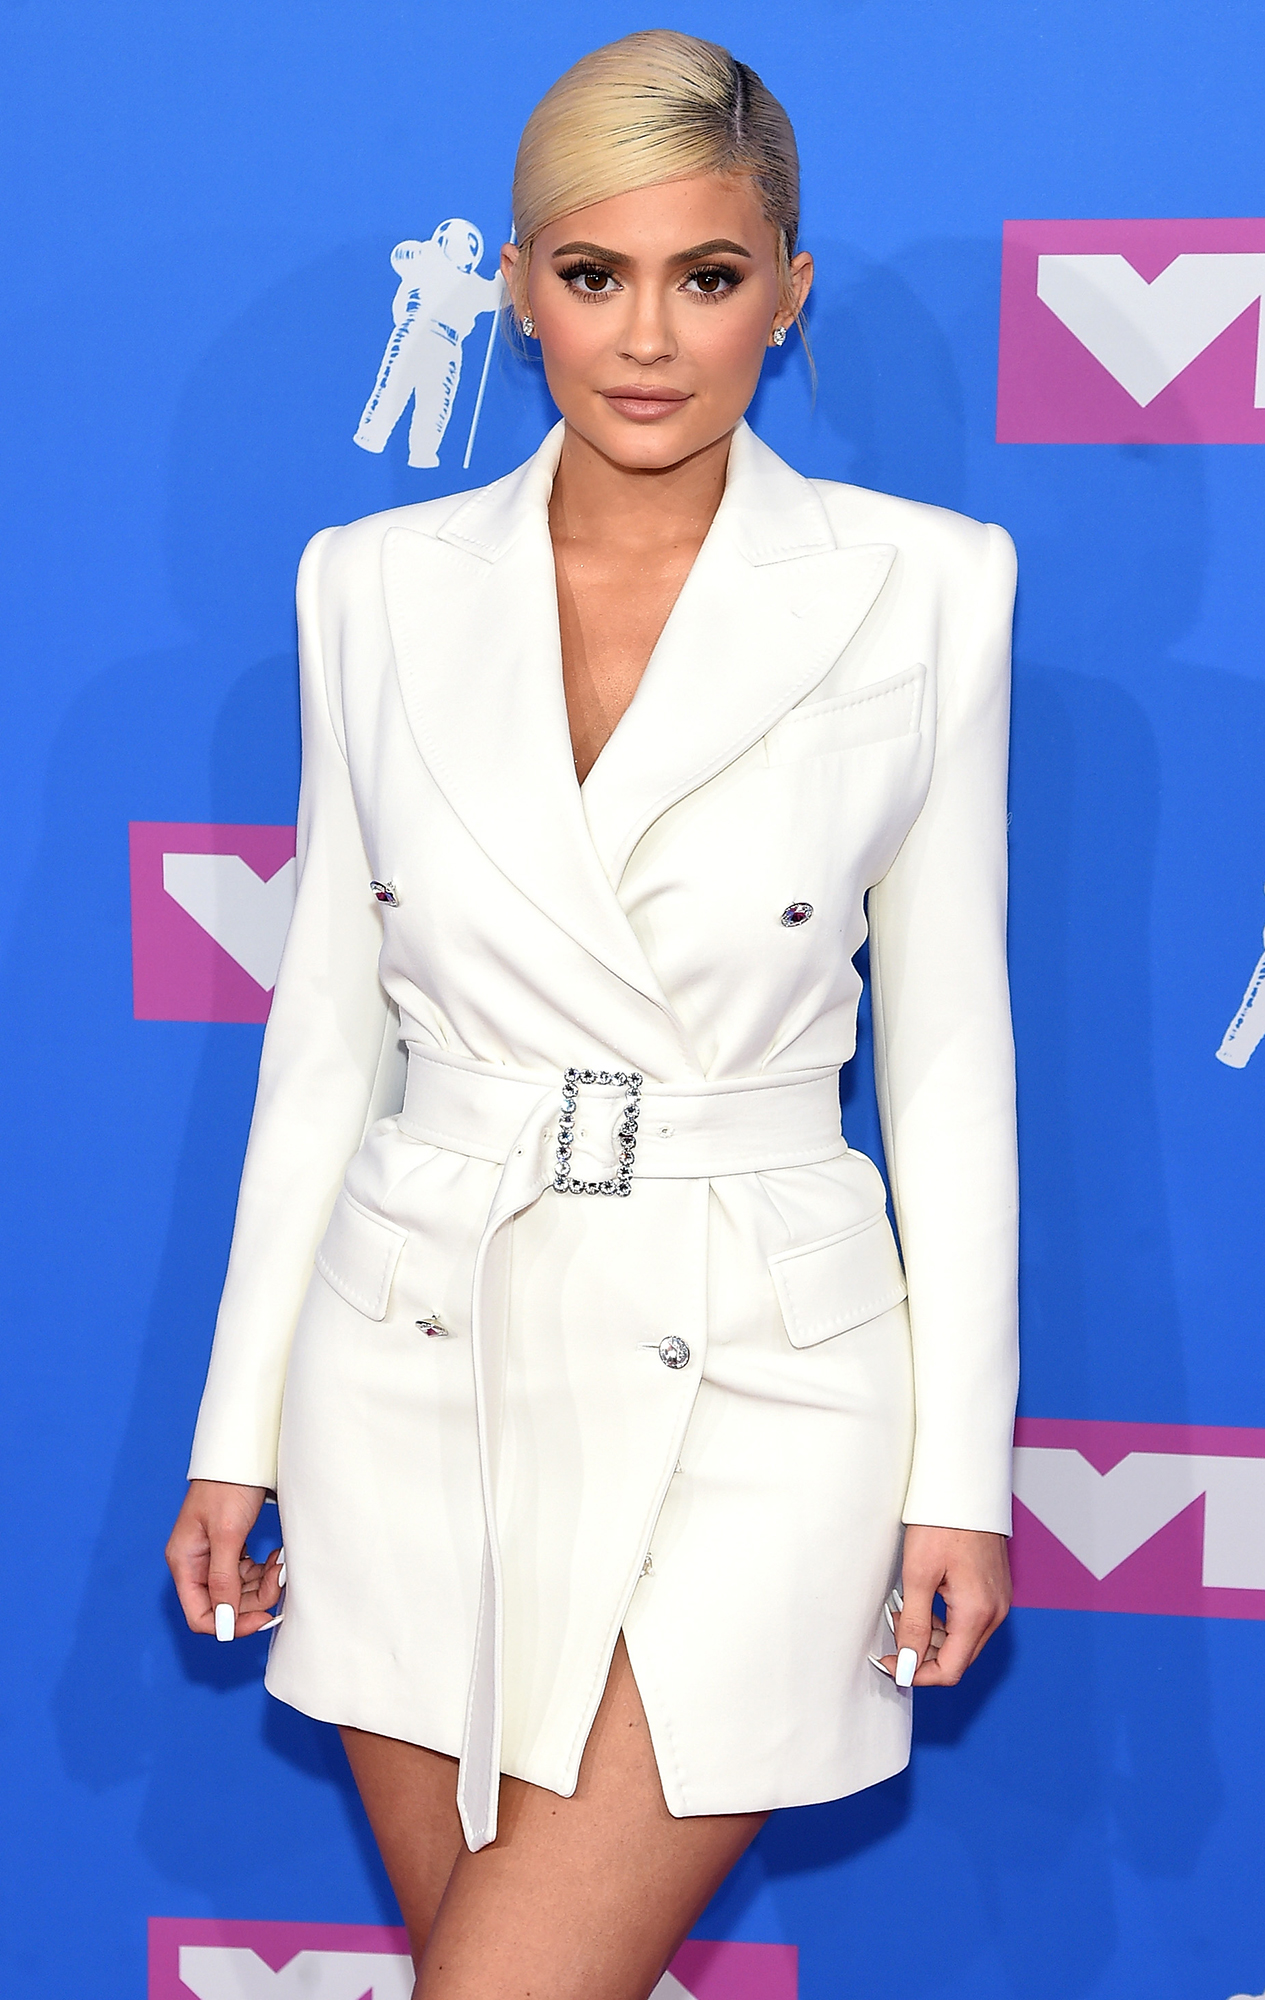 Kylie Jenner Stormi Birthday Presents - Kylie Jenner attends the 2018 MTV Video Music Awards at Radio City Music Hall on August 20, 2018 in New York City.